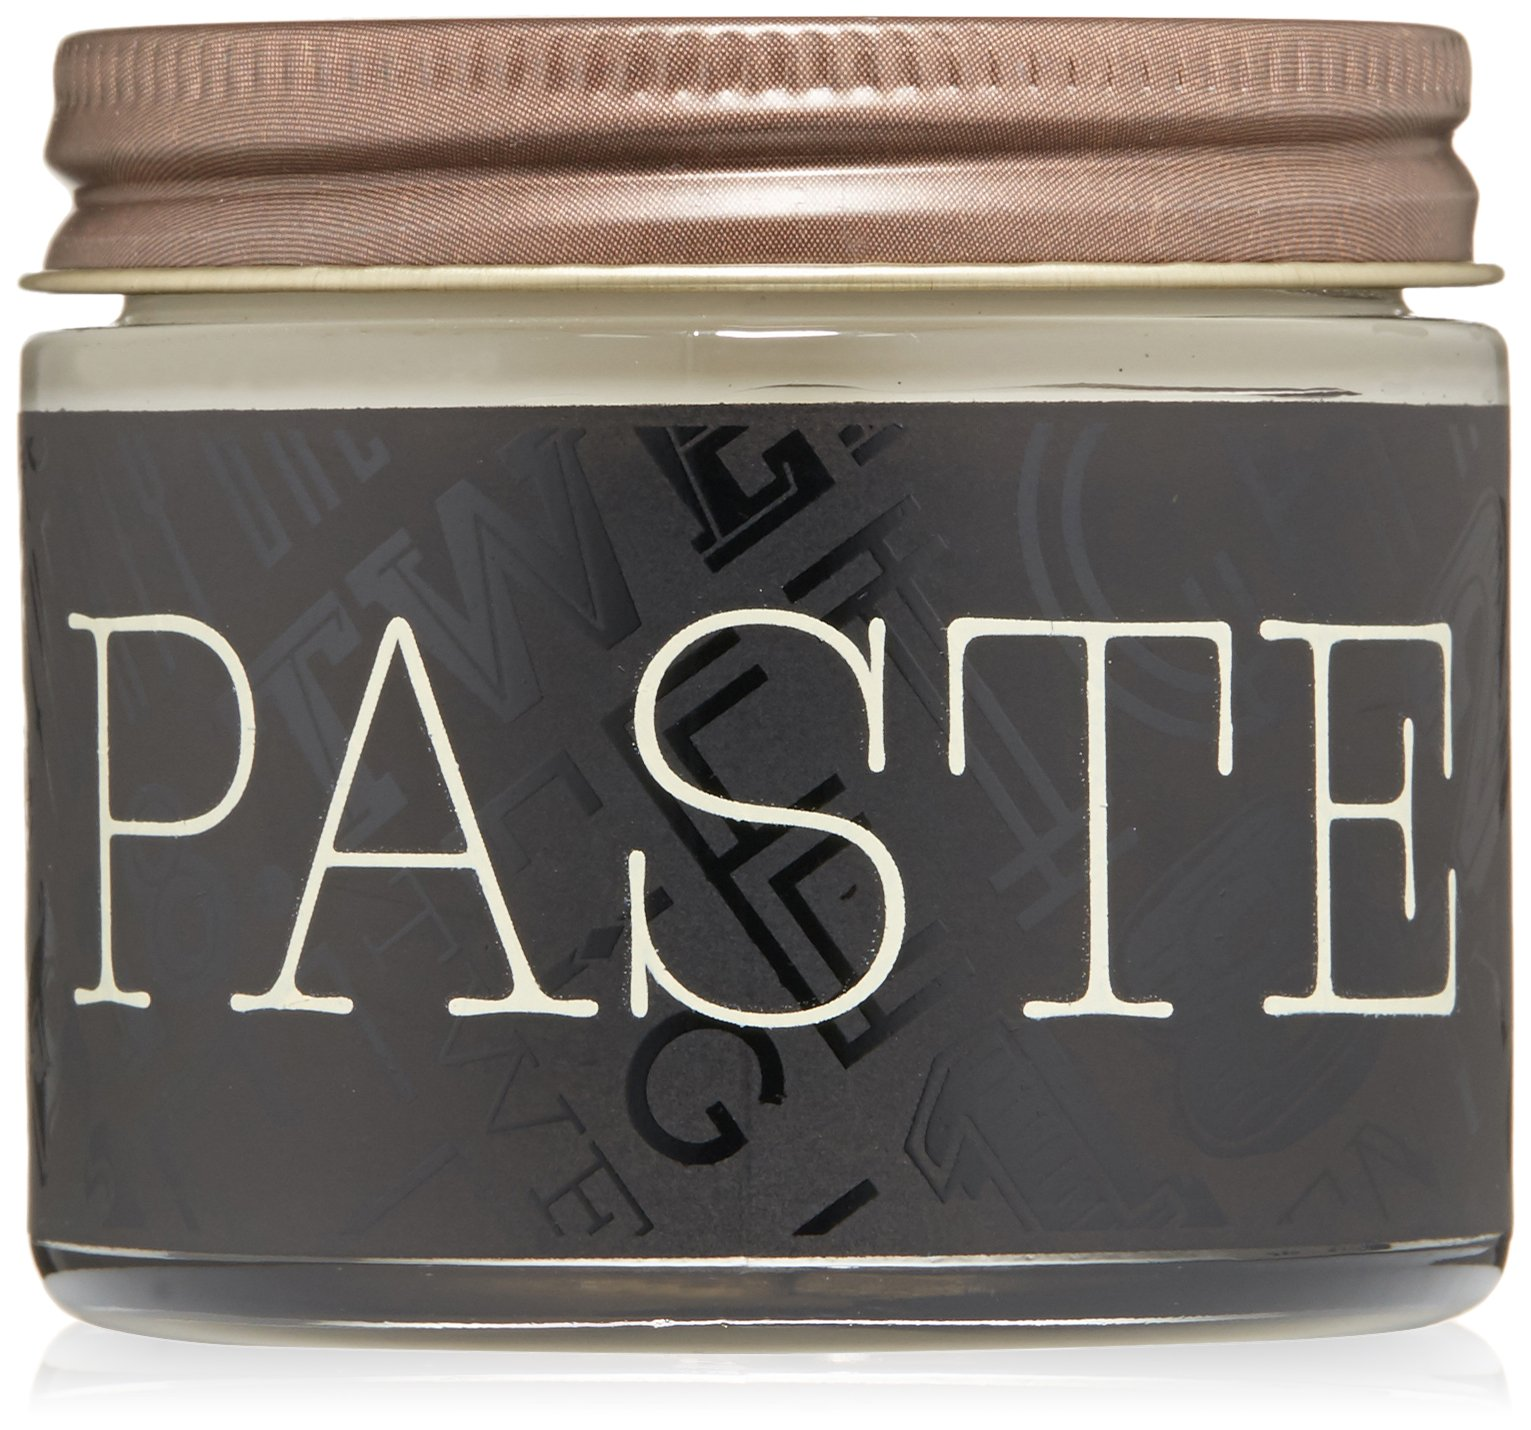 18.21 Man Made Paste, 2 oz by 18.21 Man Made (Image #5)